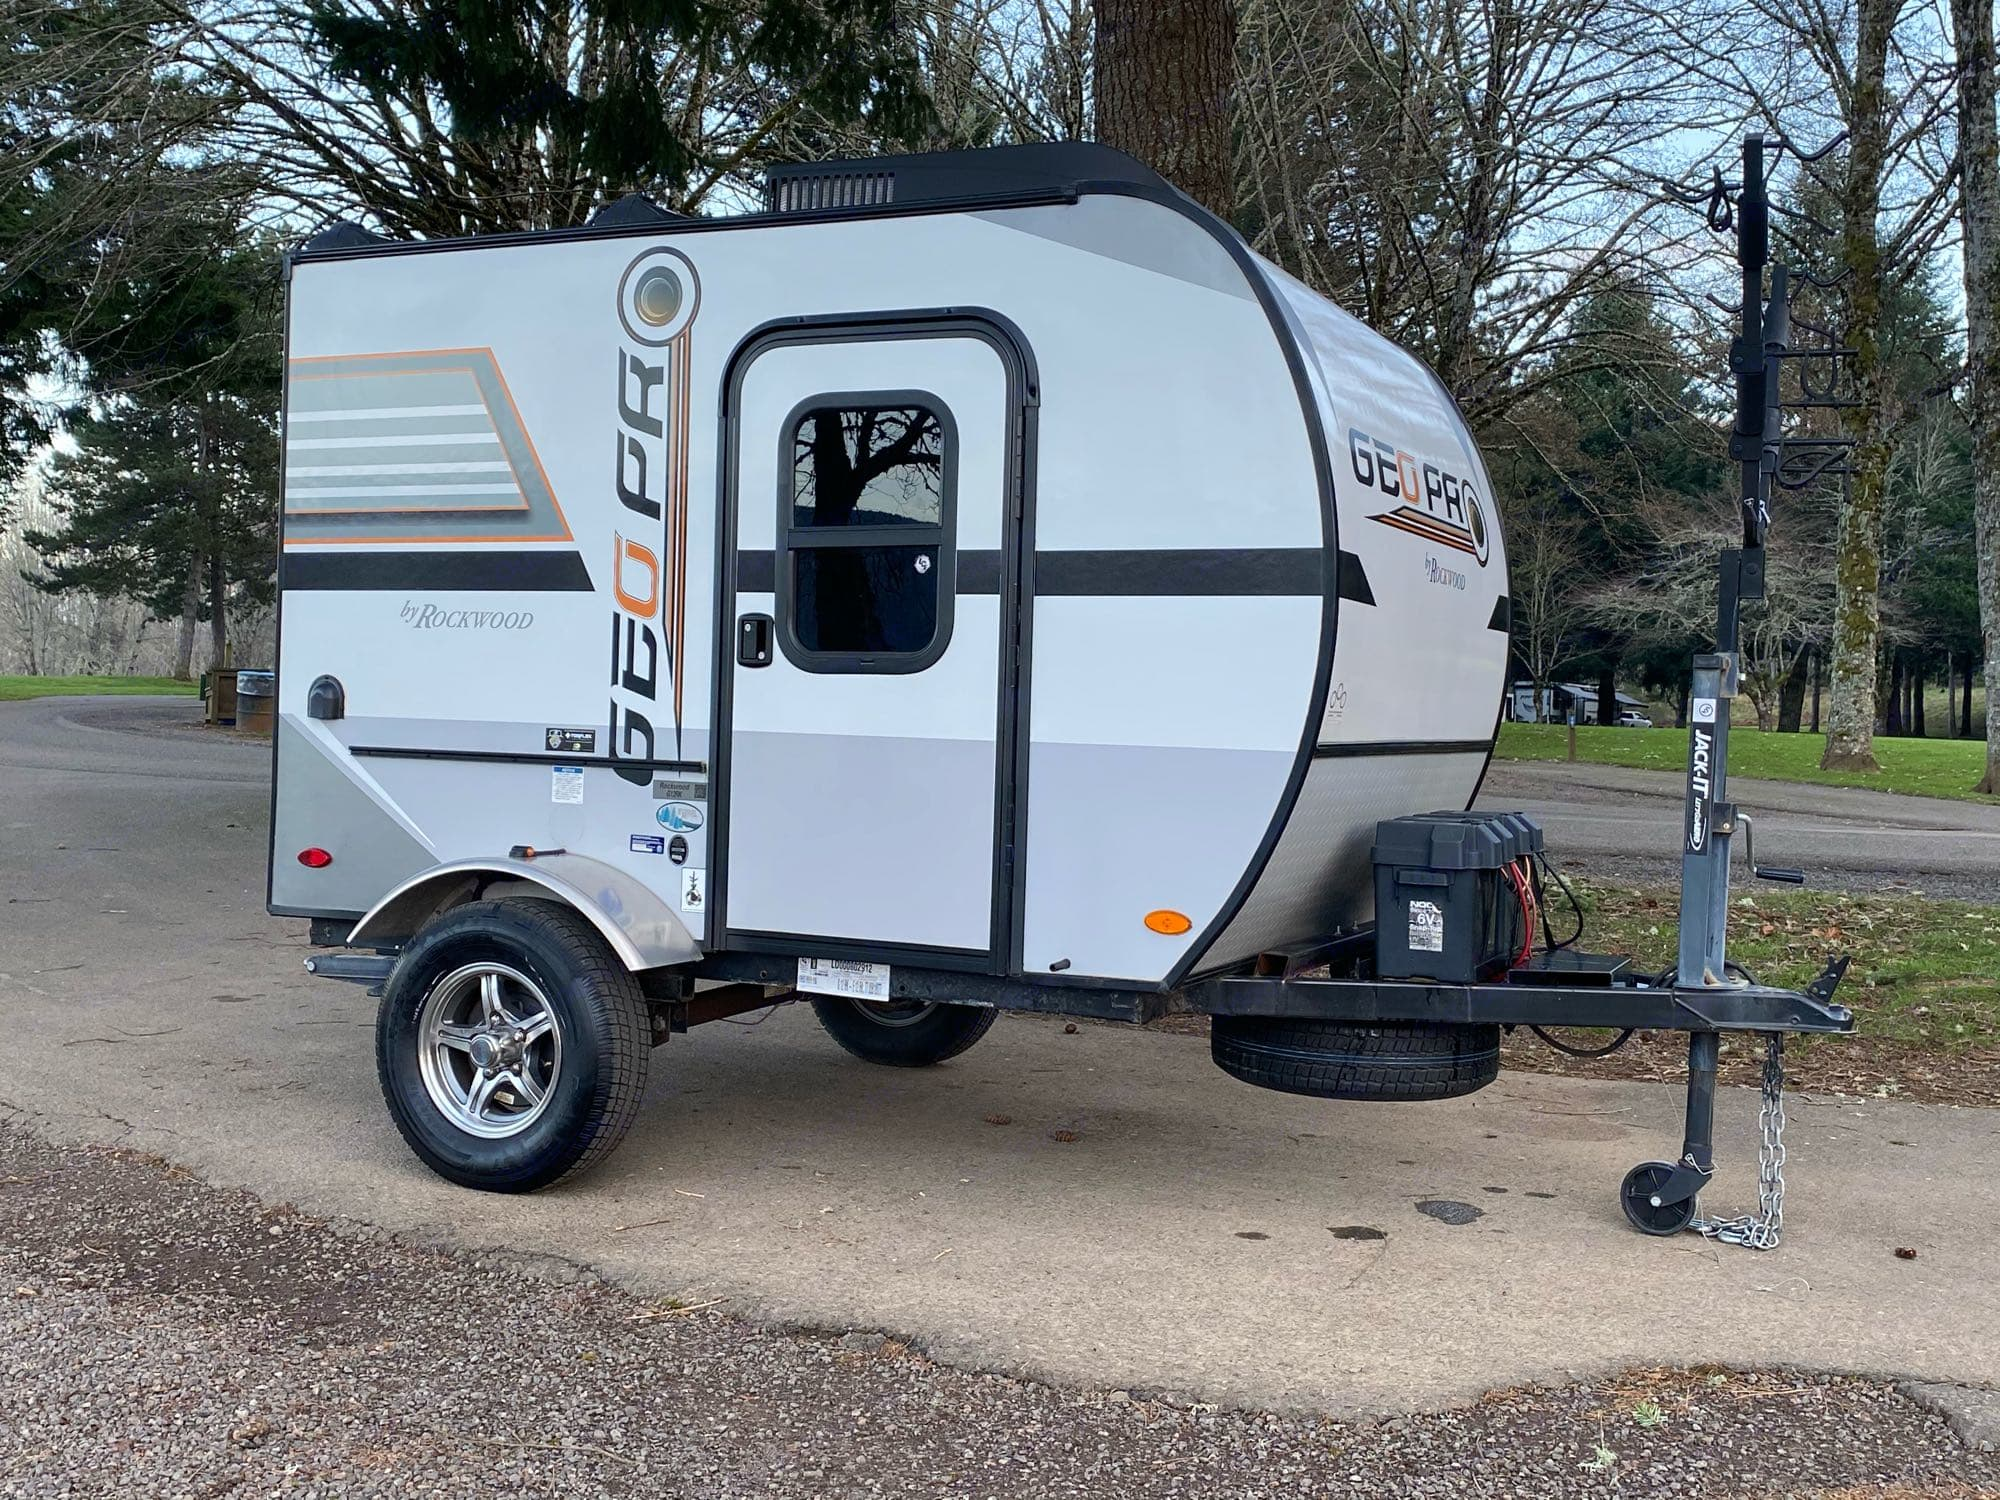 Weighing only 1250 pounds, Joey is easy to pull by just about any car or small SUV.. Rockwood Geo Pro RK12 2018